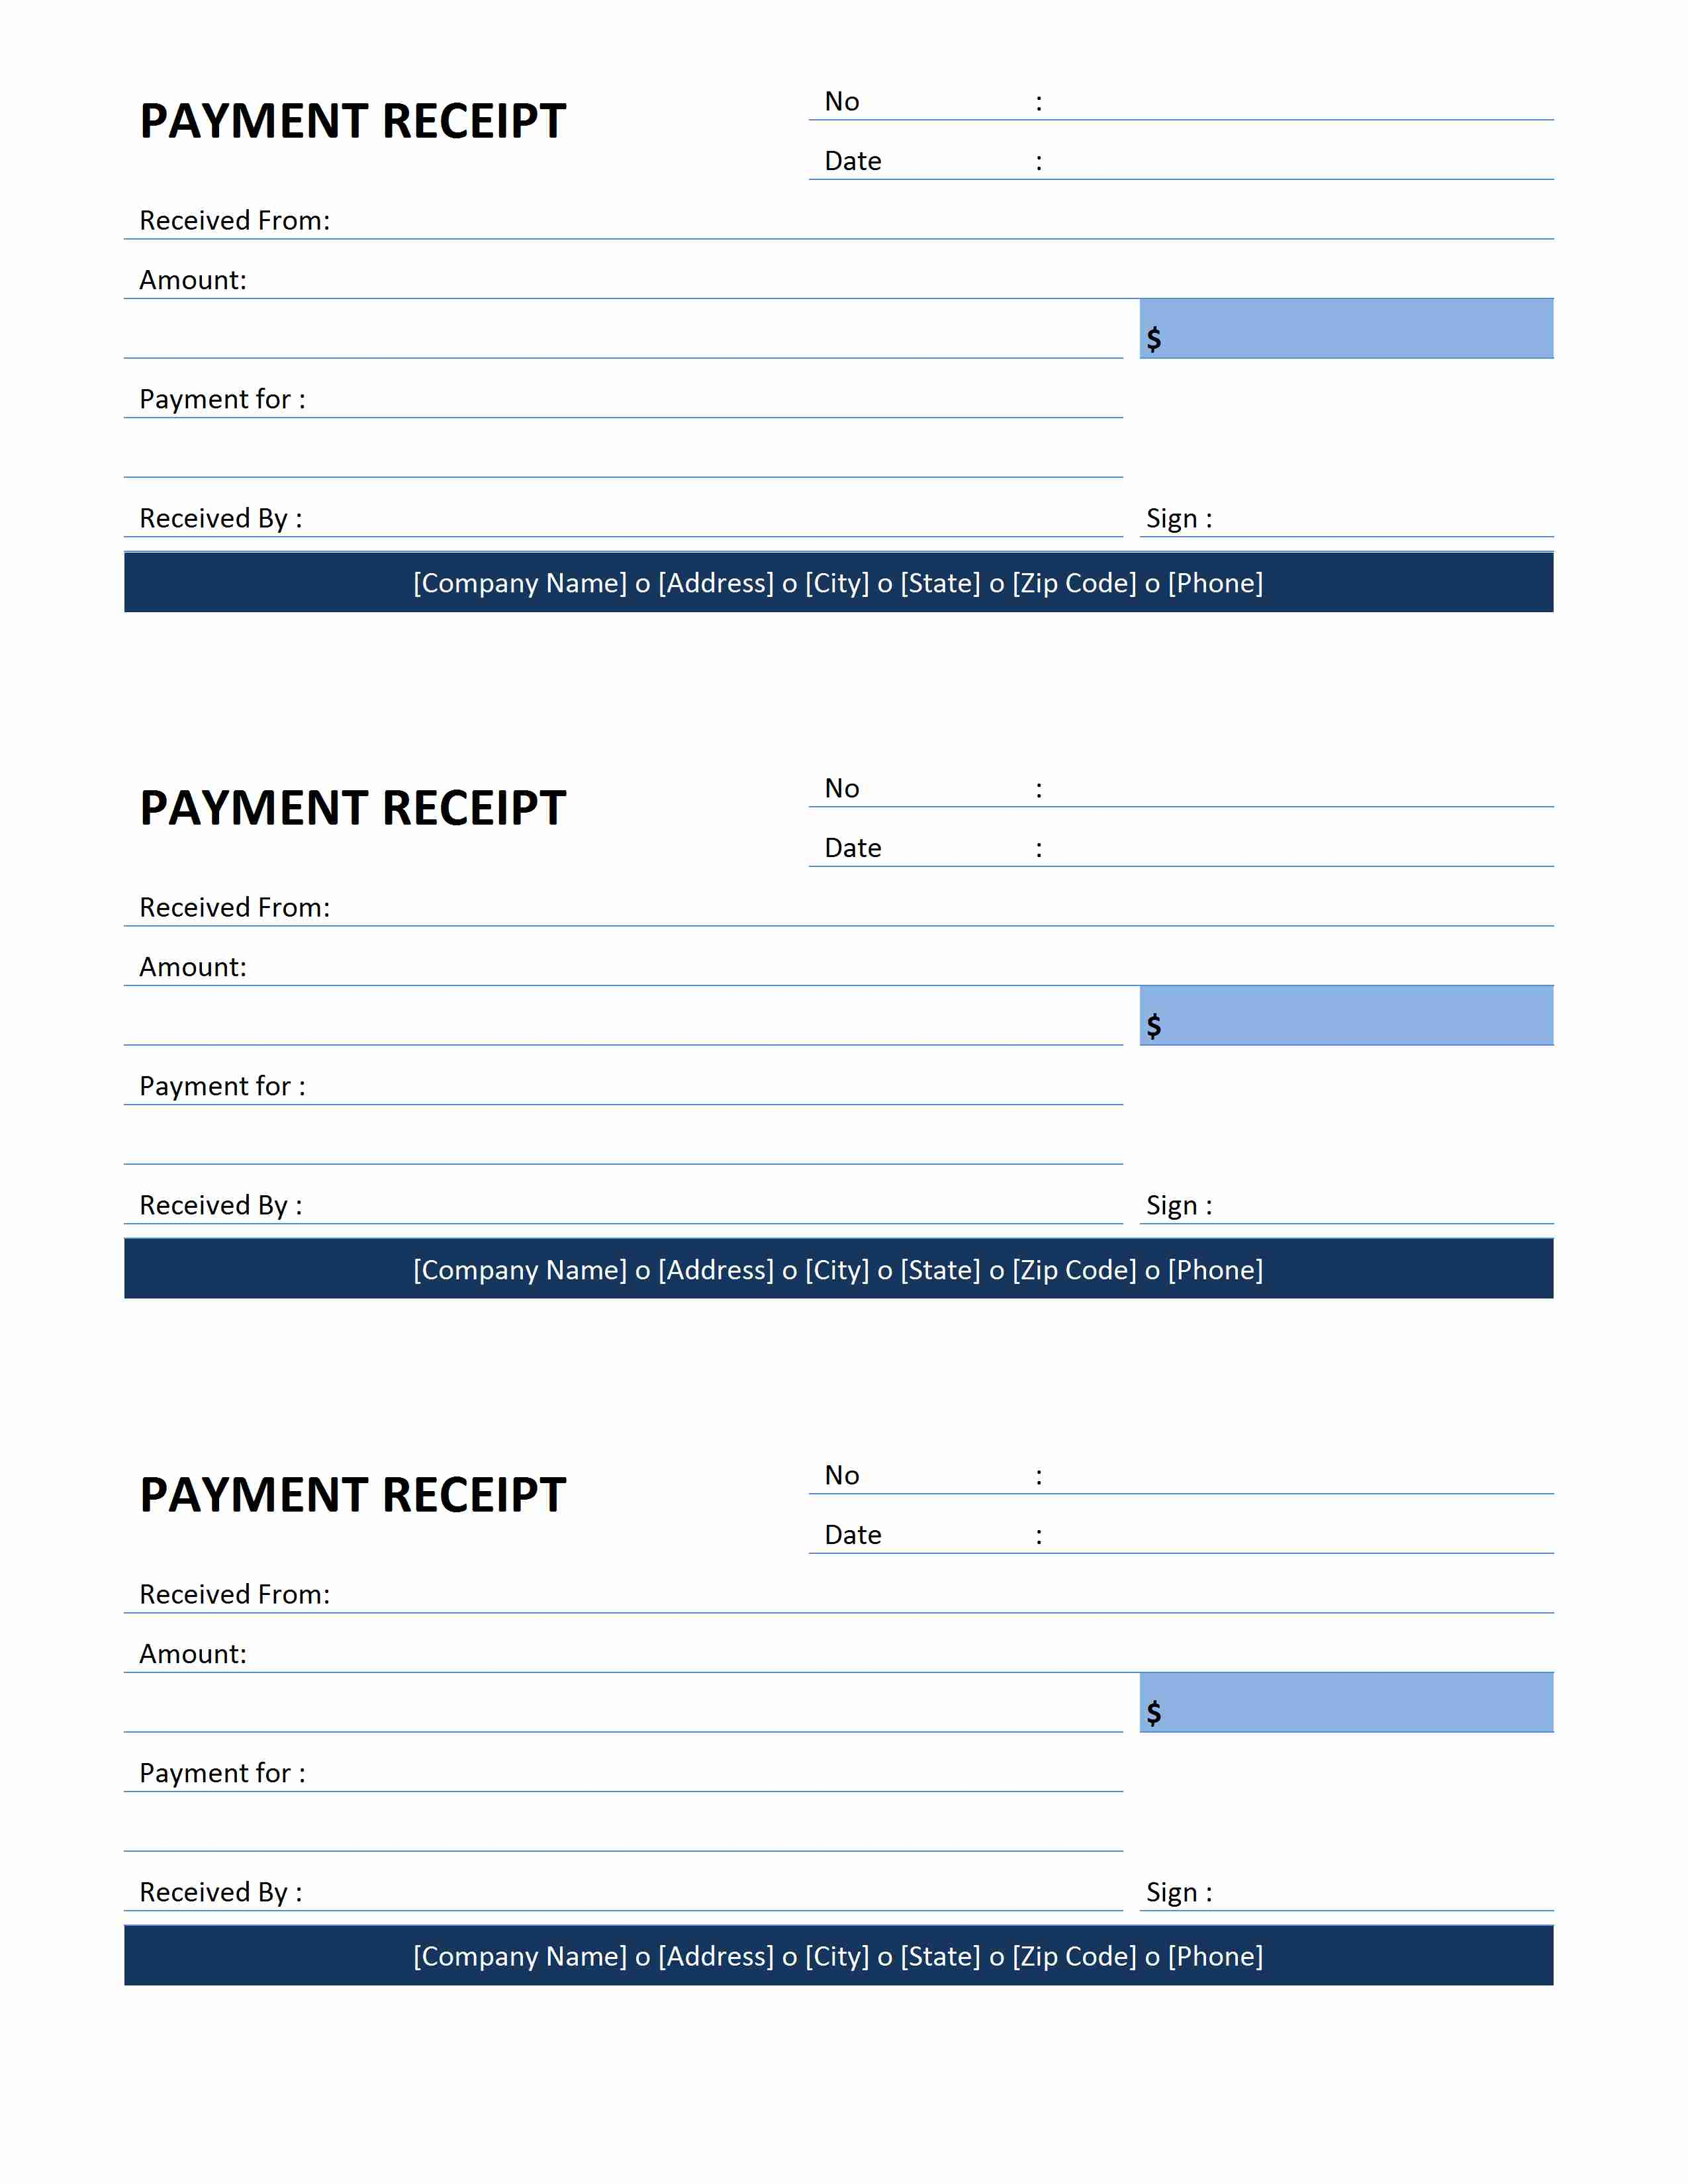 payment receipt template for word - Payment Receipt Template